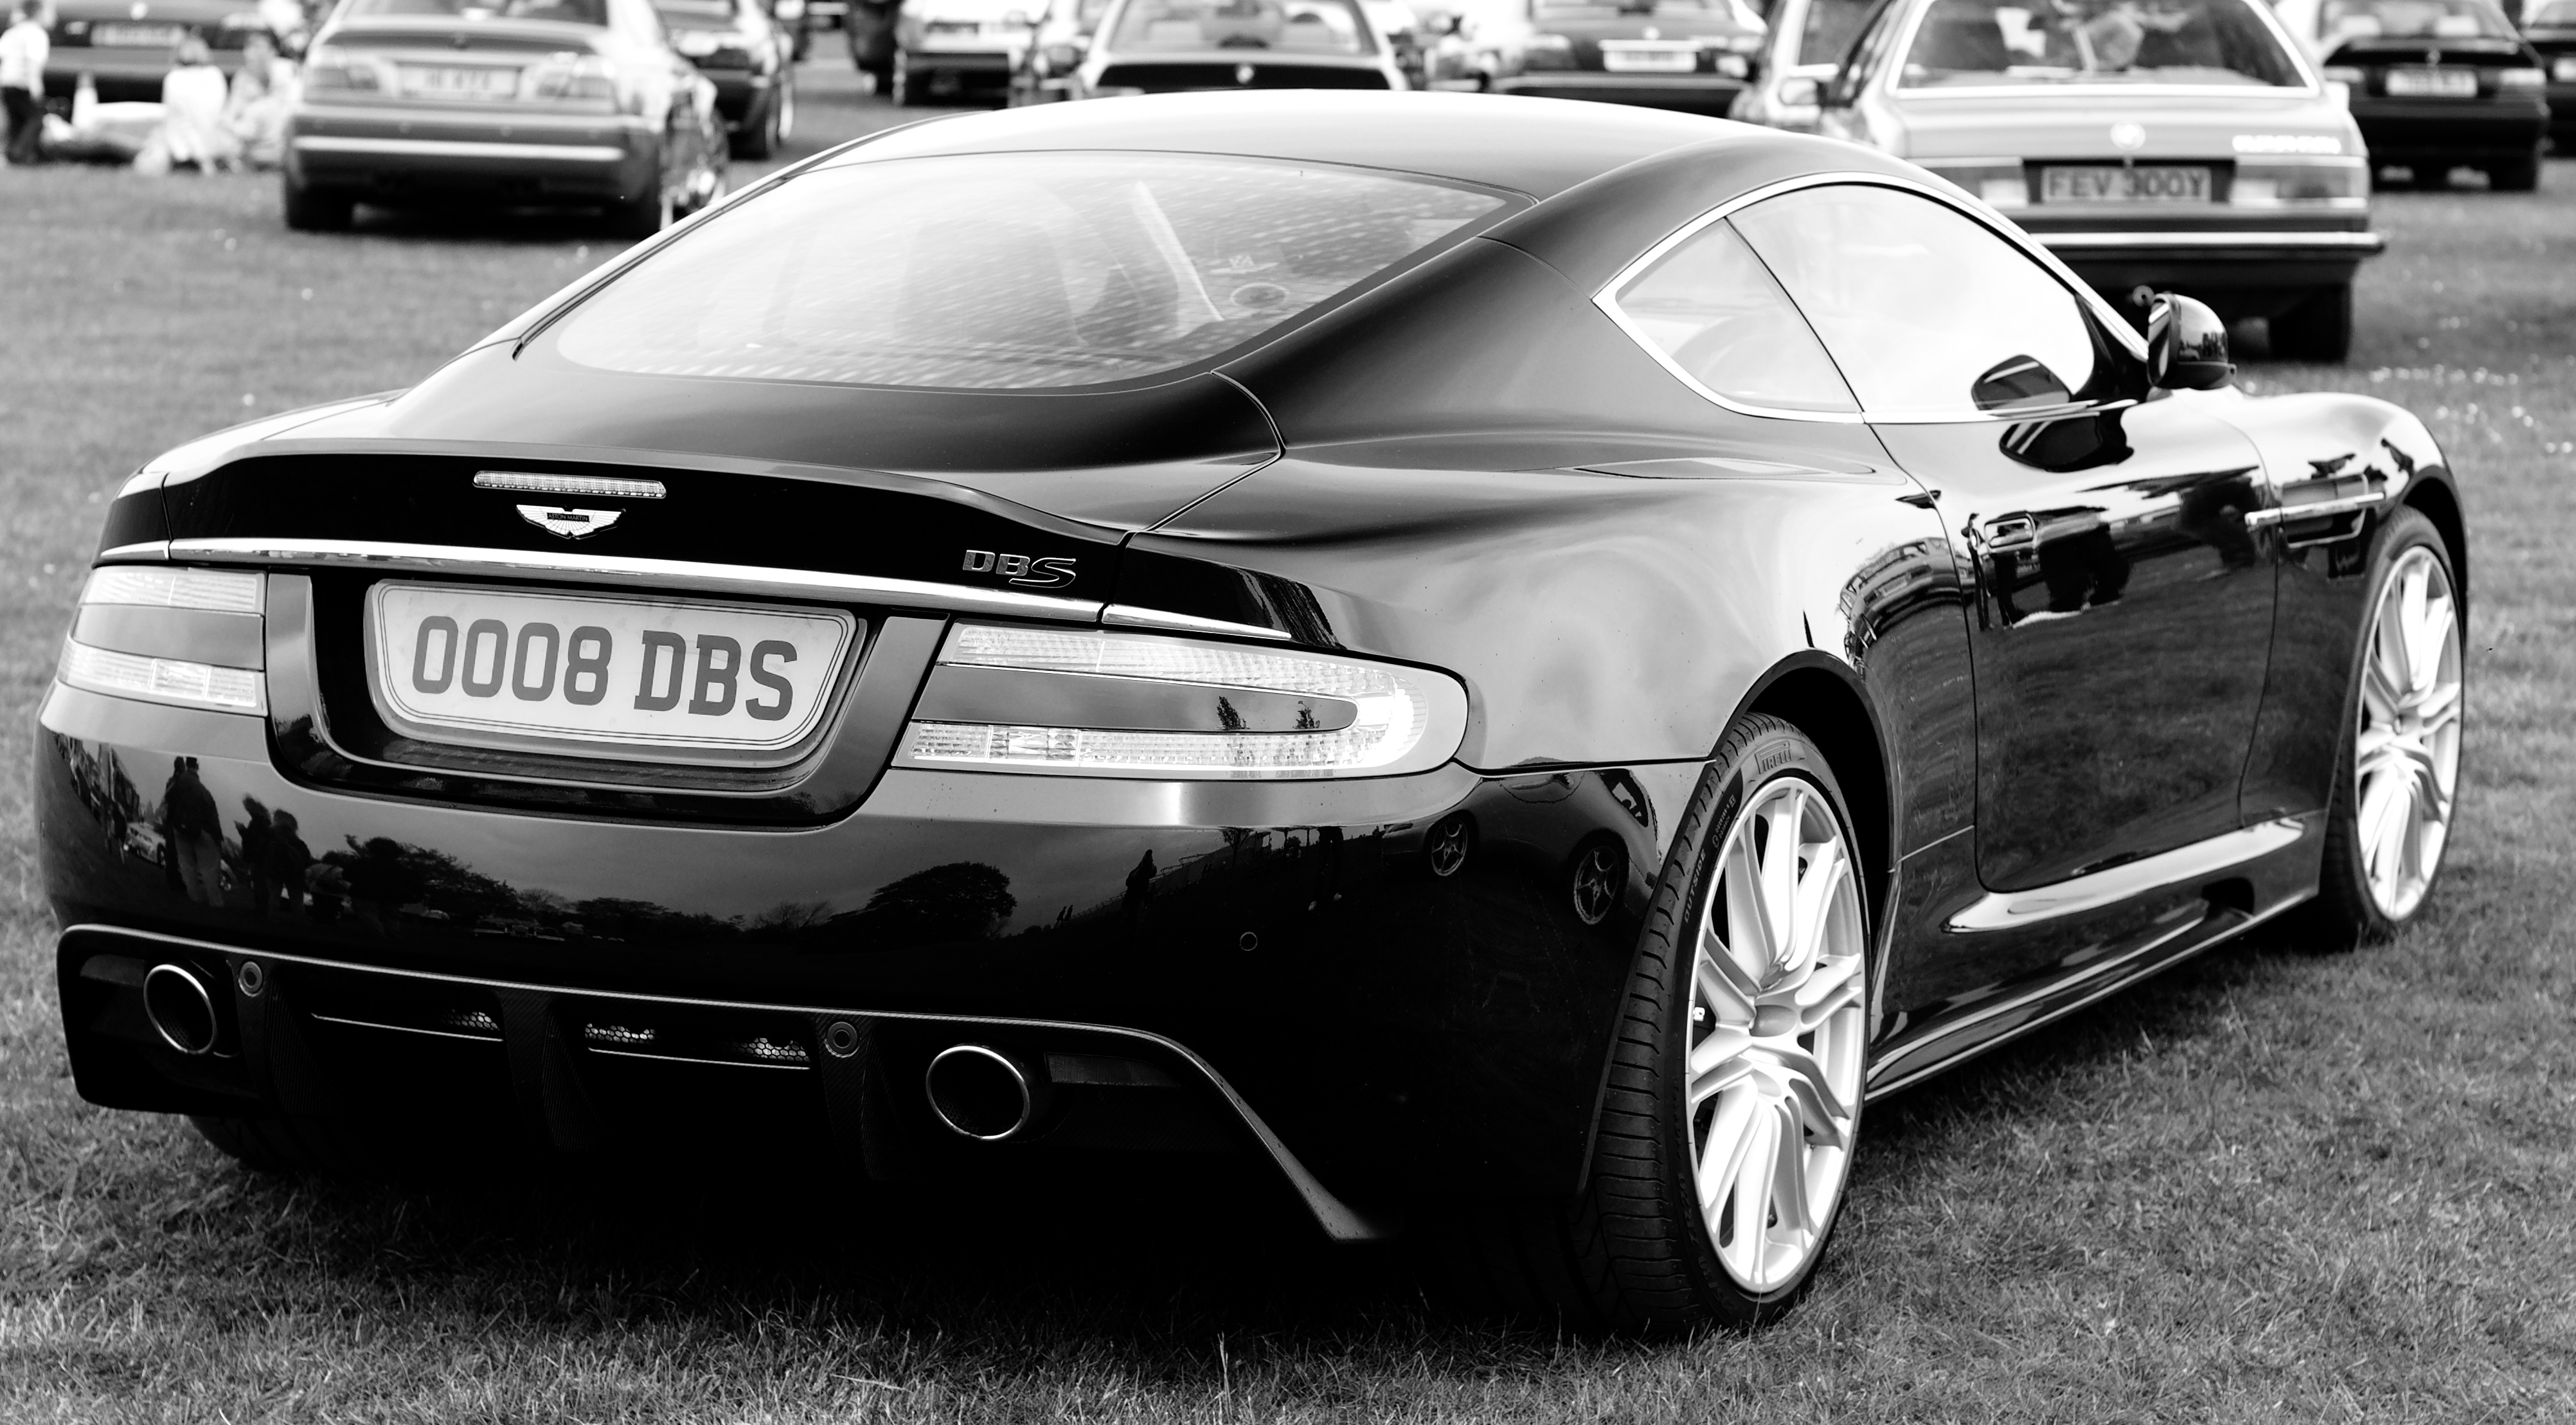 file:aston martin dbs v12 coupé (rear) b-w - wikimedia commons